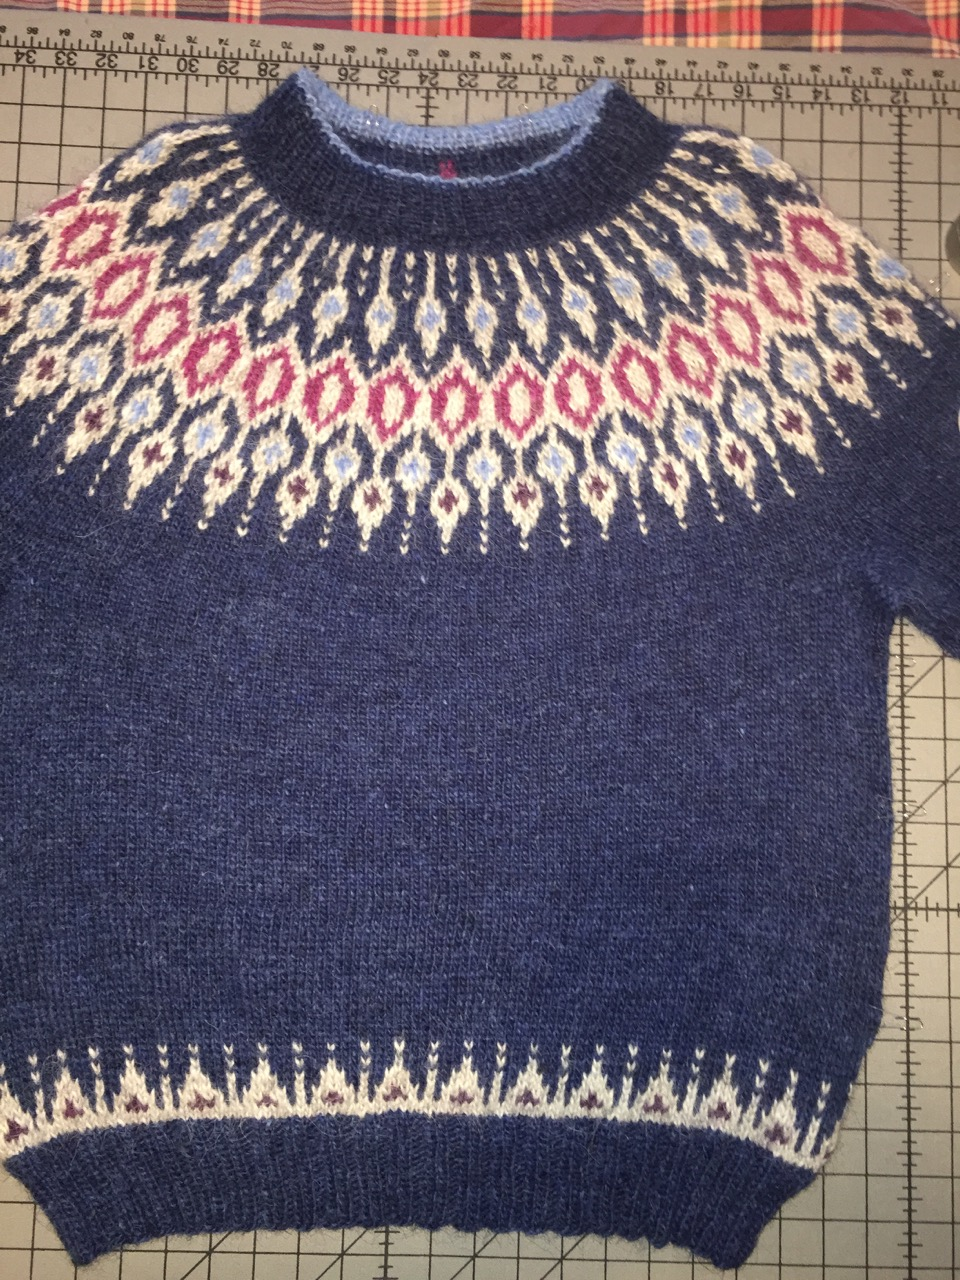 9c793609c148 Knitting woolly projects!